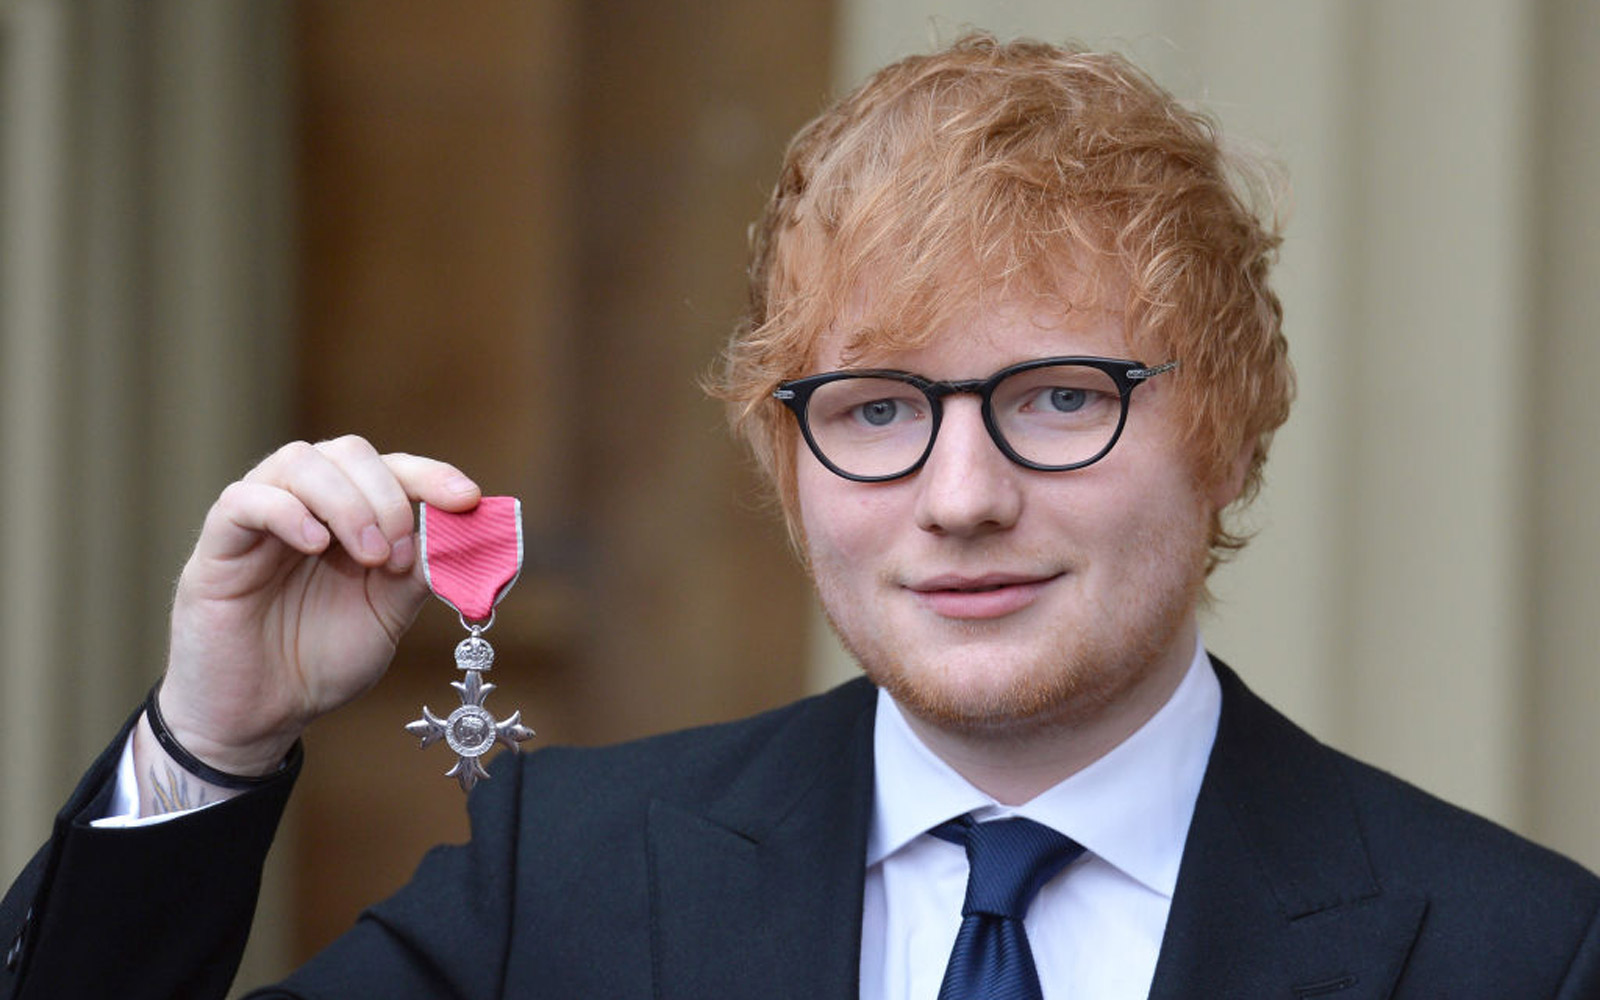 Prince Charles Bestows Ed Sheeran With Major Honor at Buckingham Palace (Video)